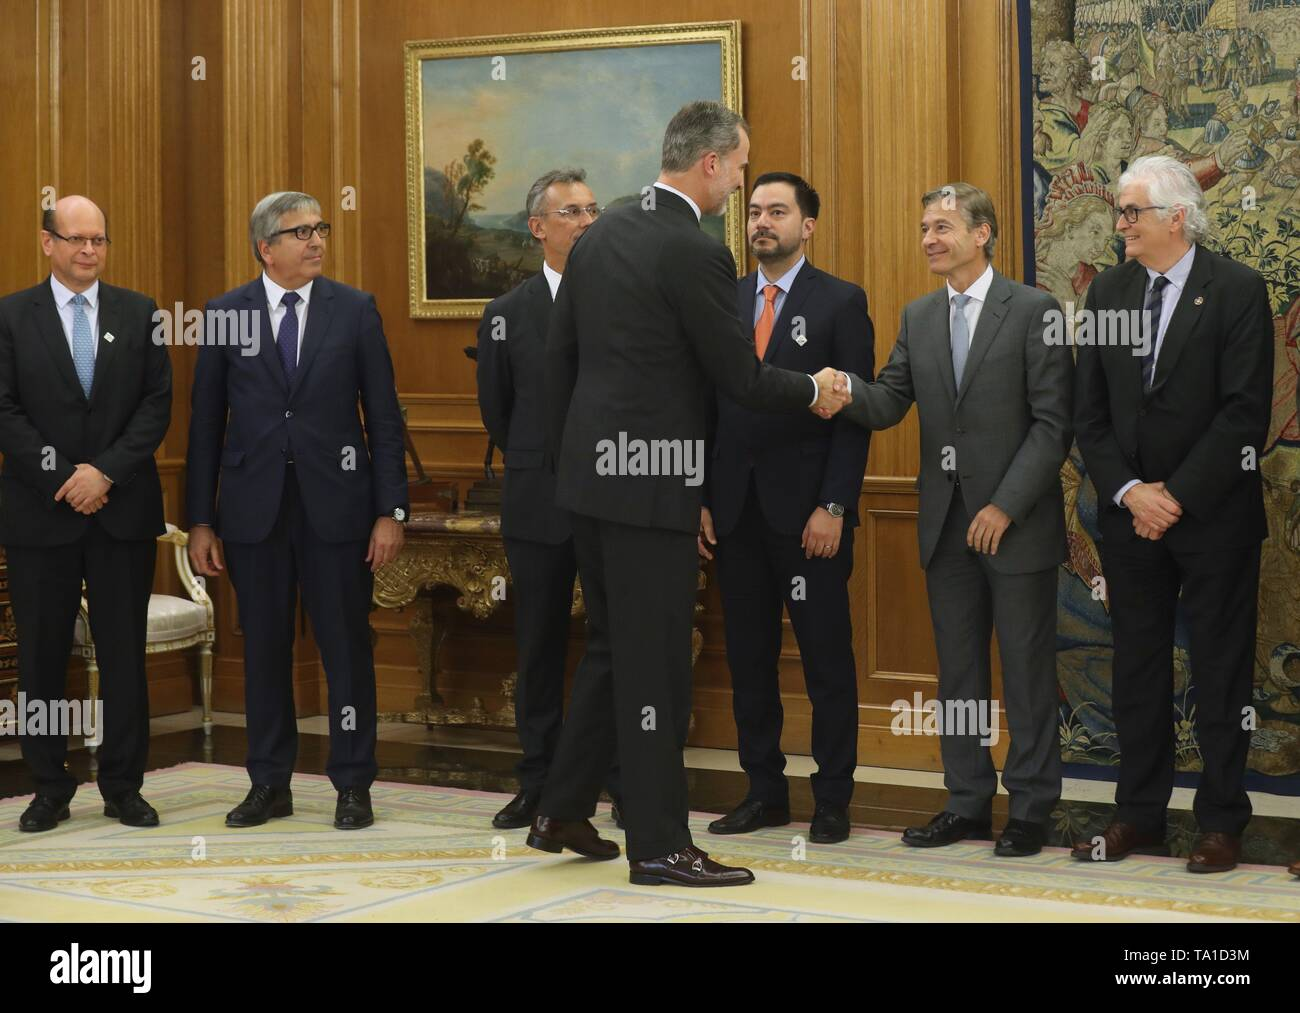 Spanish King Felipe VI (C) welcomes attendants of the General Assembly of the Latin American Financial Institutions Associations for Development, held at the Zarzuela Palace in Madrid, Spain, 21 May 2019. - Stock Image